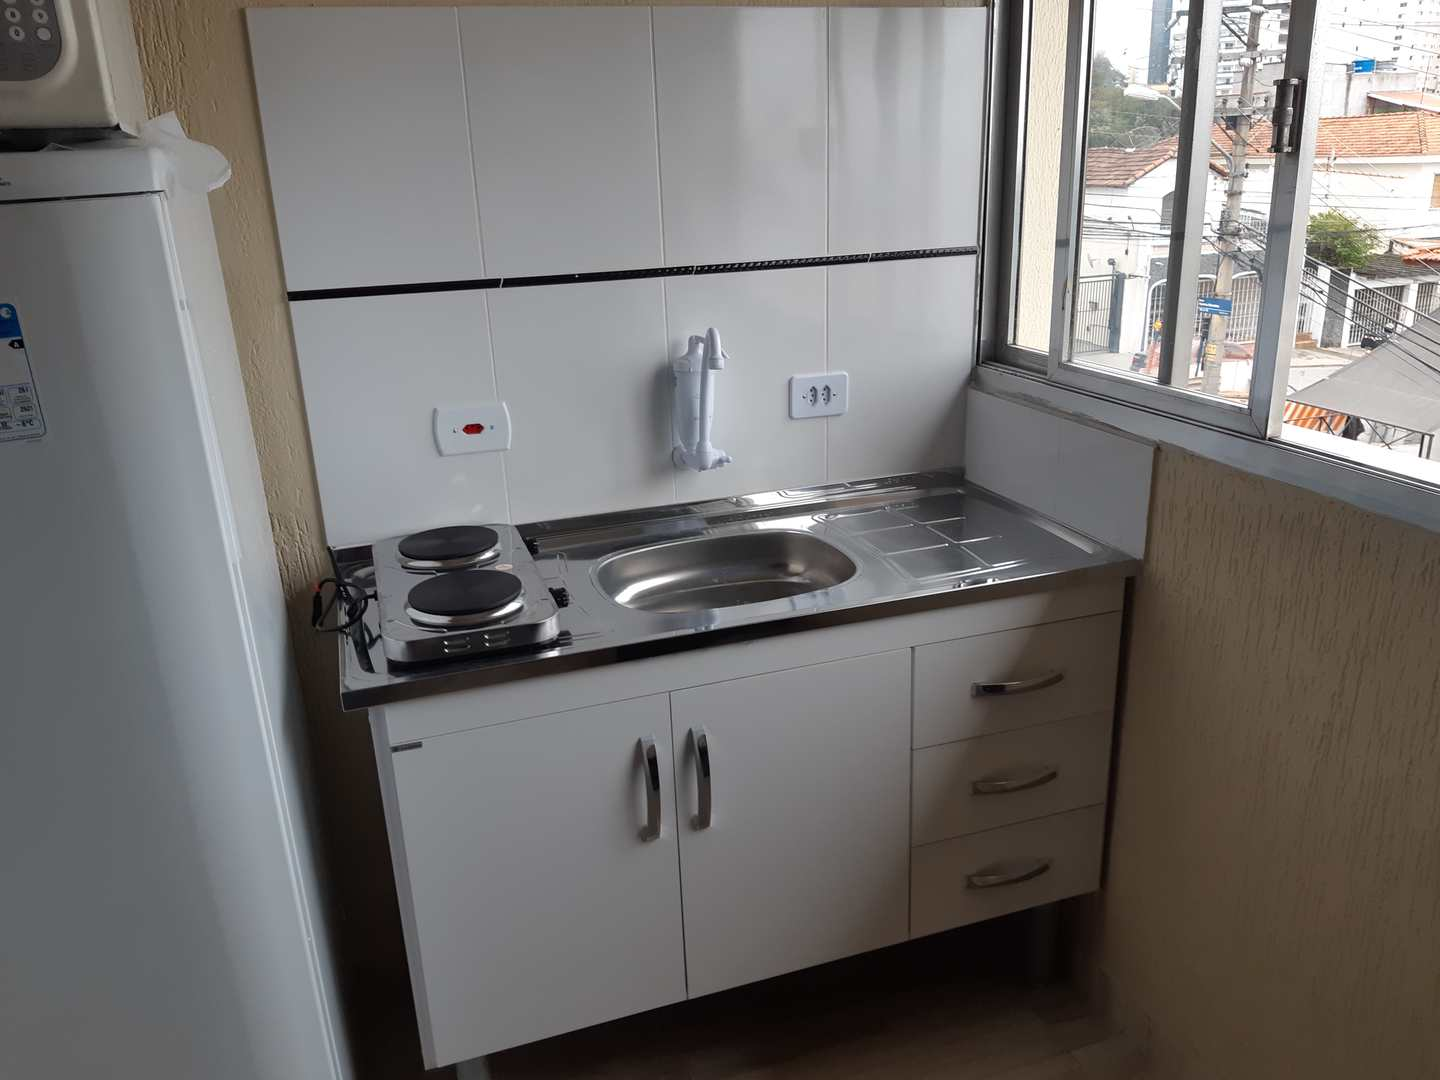 Lofts (quarto+coz+wc), no metrô, Sem fiador e contas inclusas